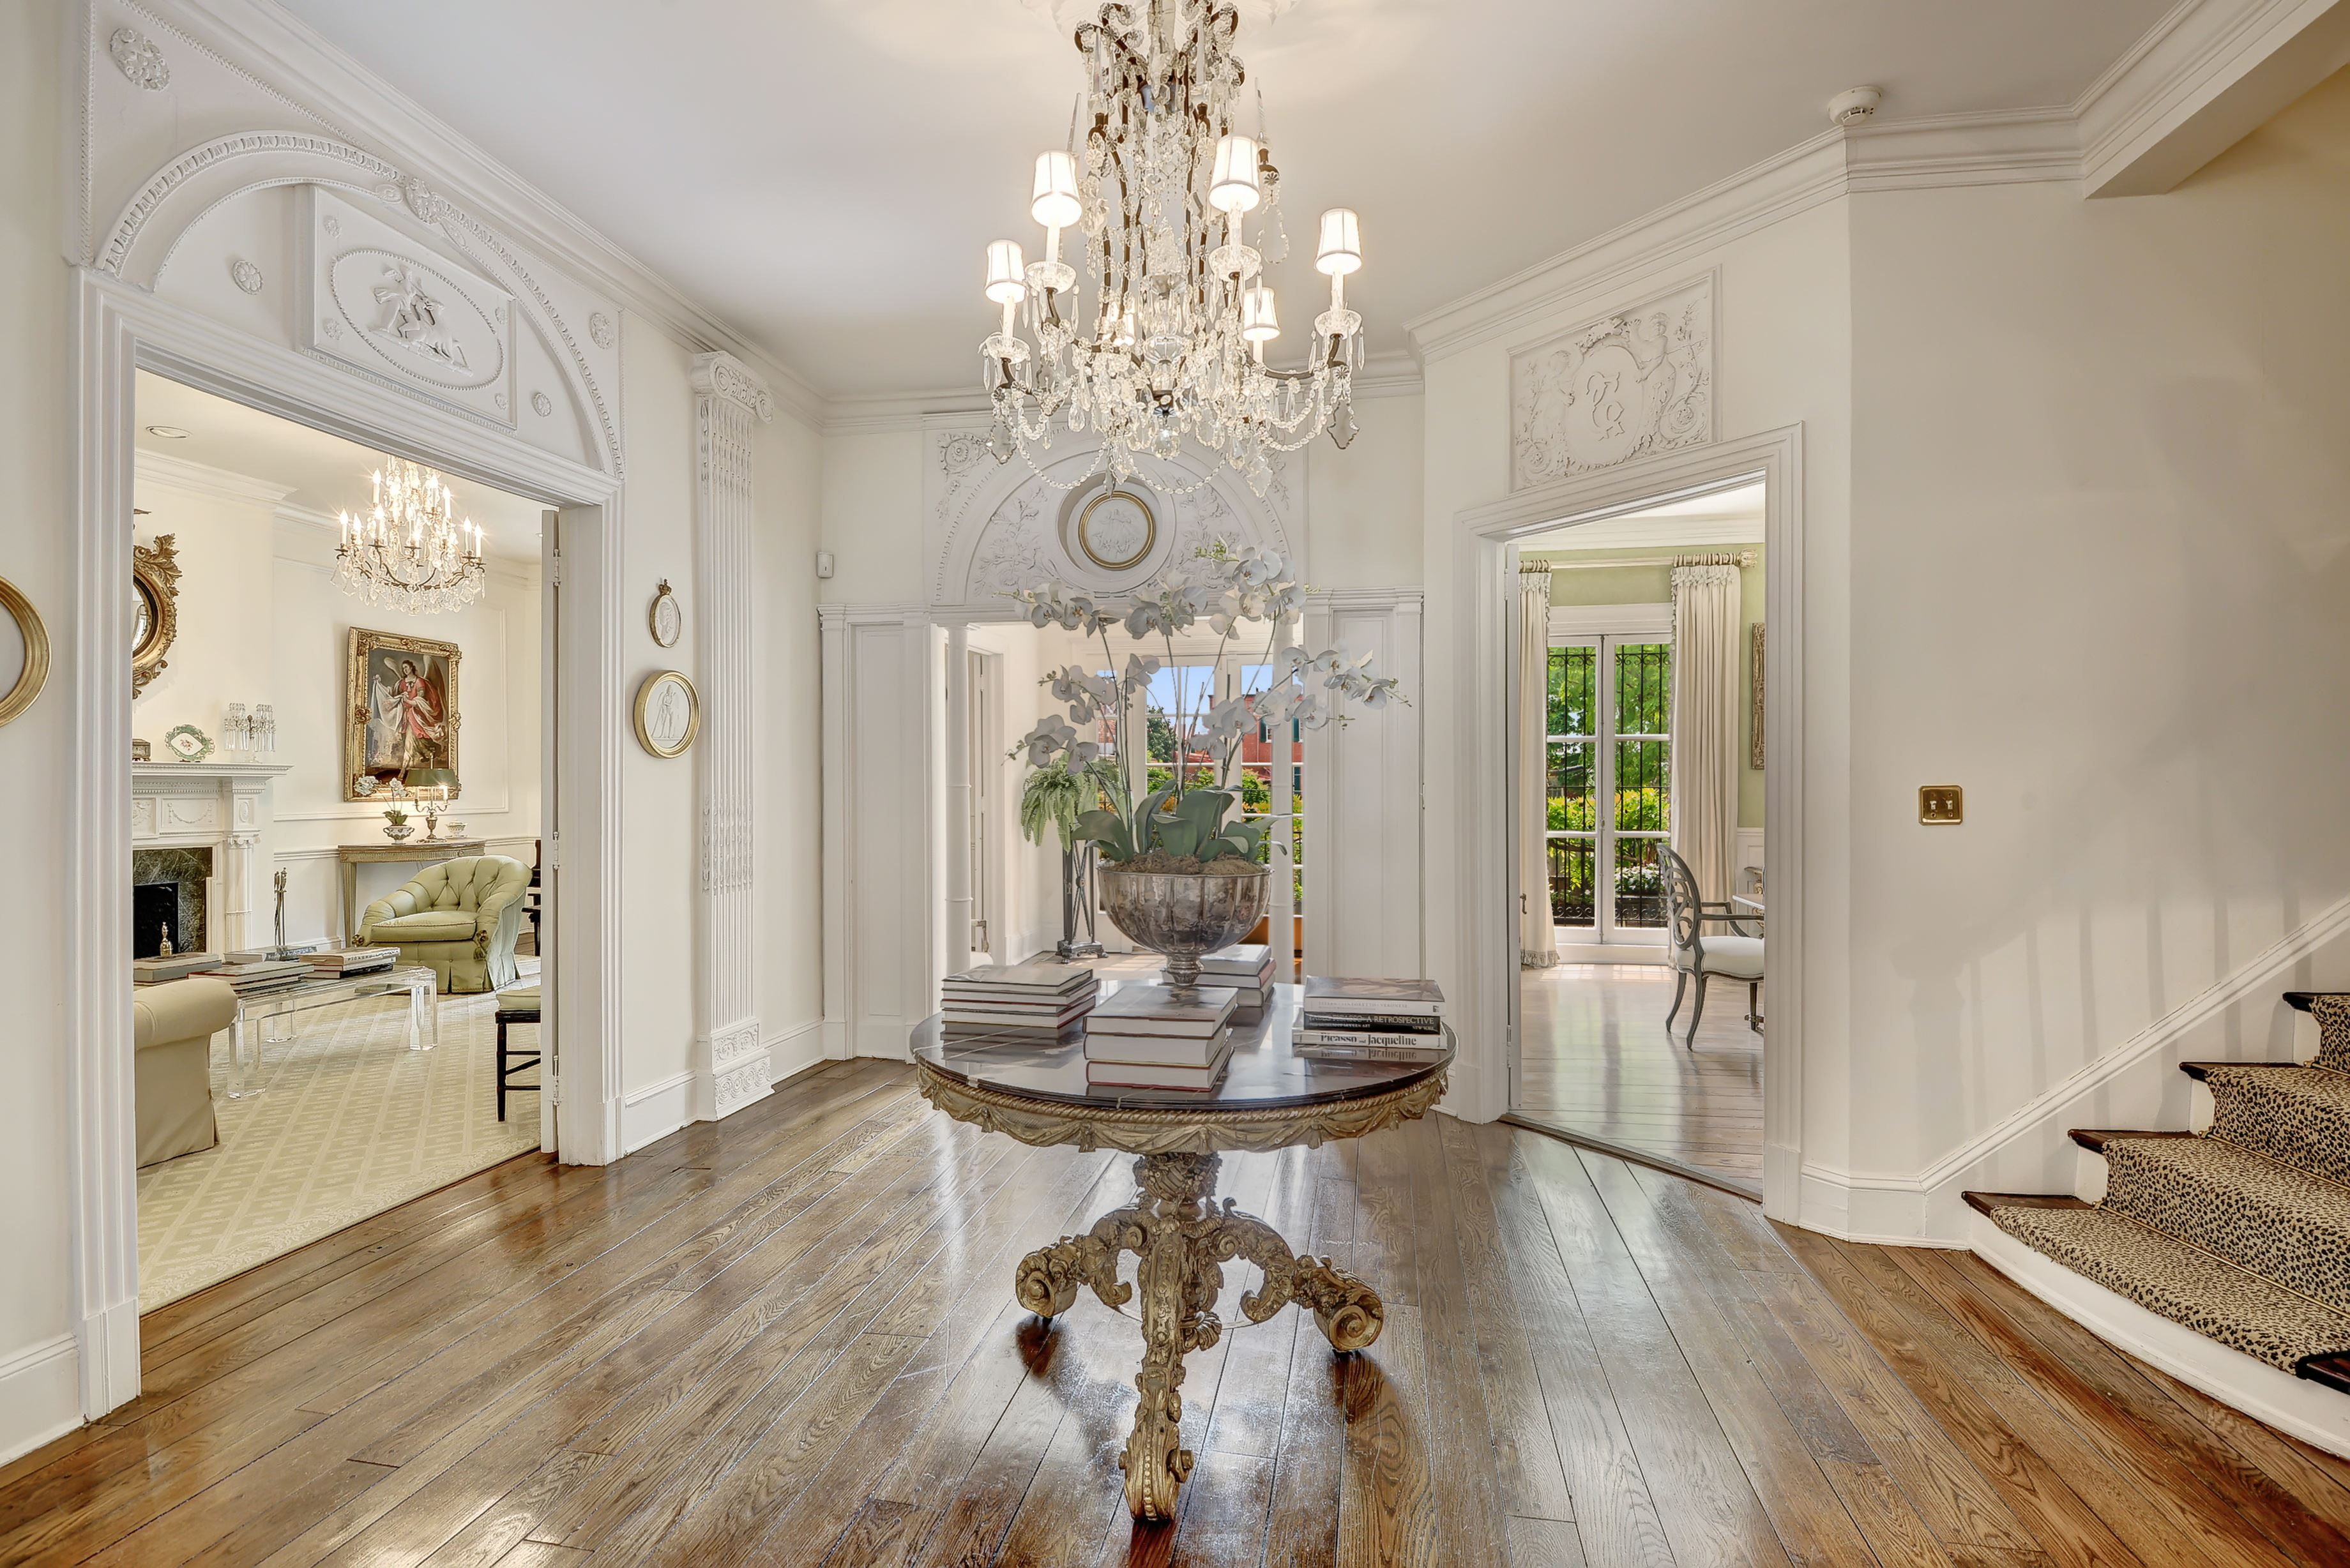 Expensive homes for sale in the Washington DC area - The